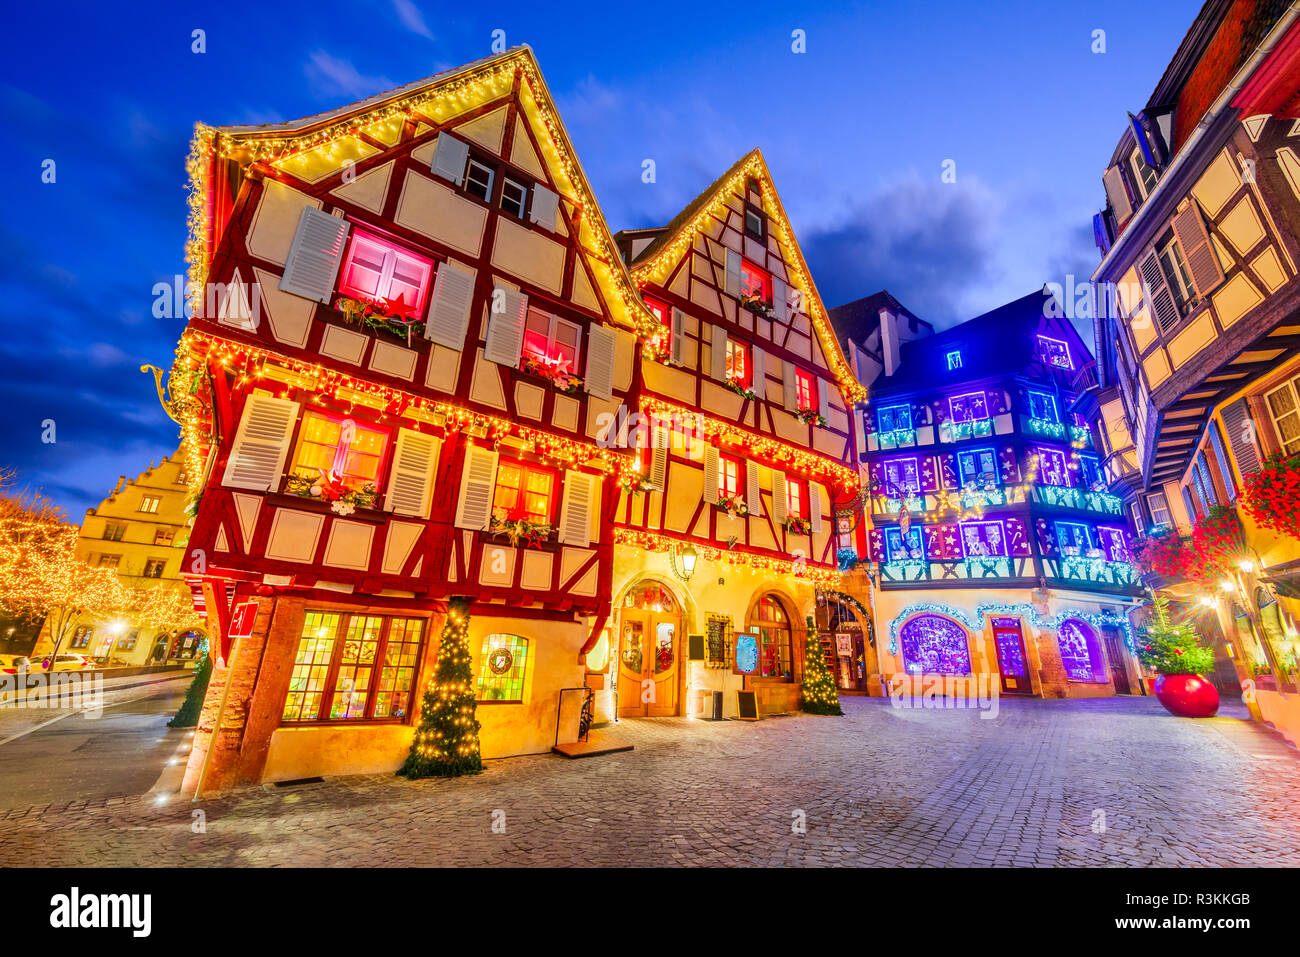 Colmar, France. Traditional Alsatian half-timbered houses Christmas decorated city in Alsace. Stock Photo